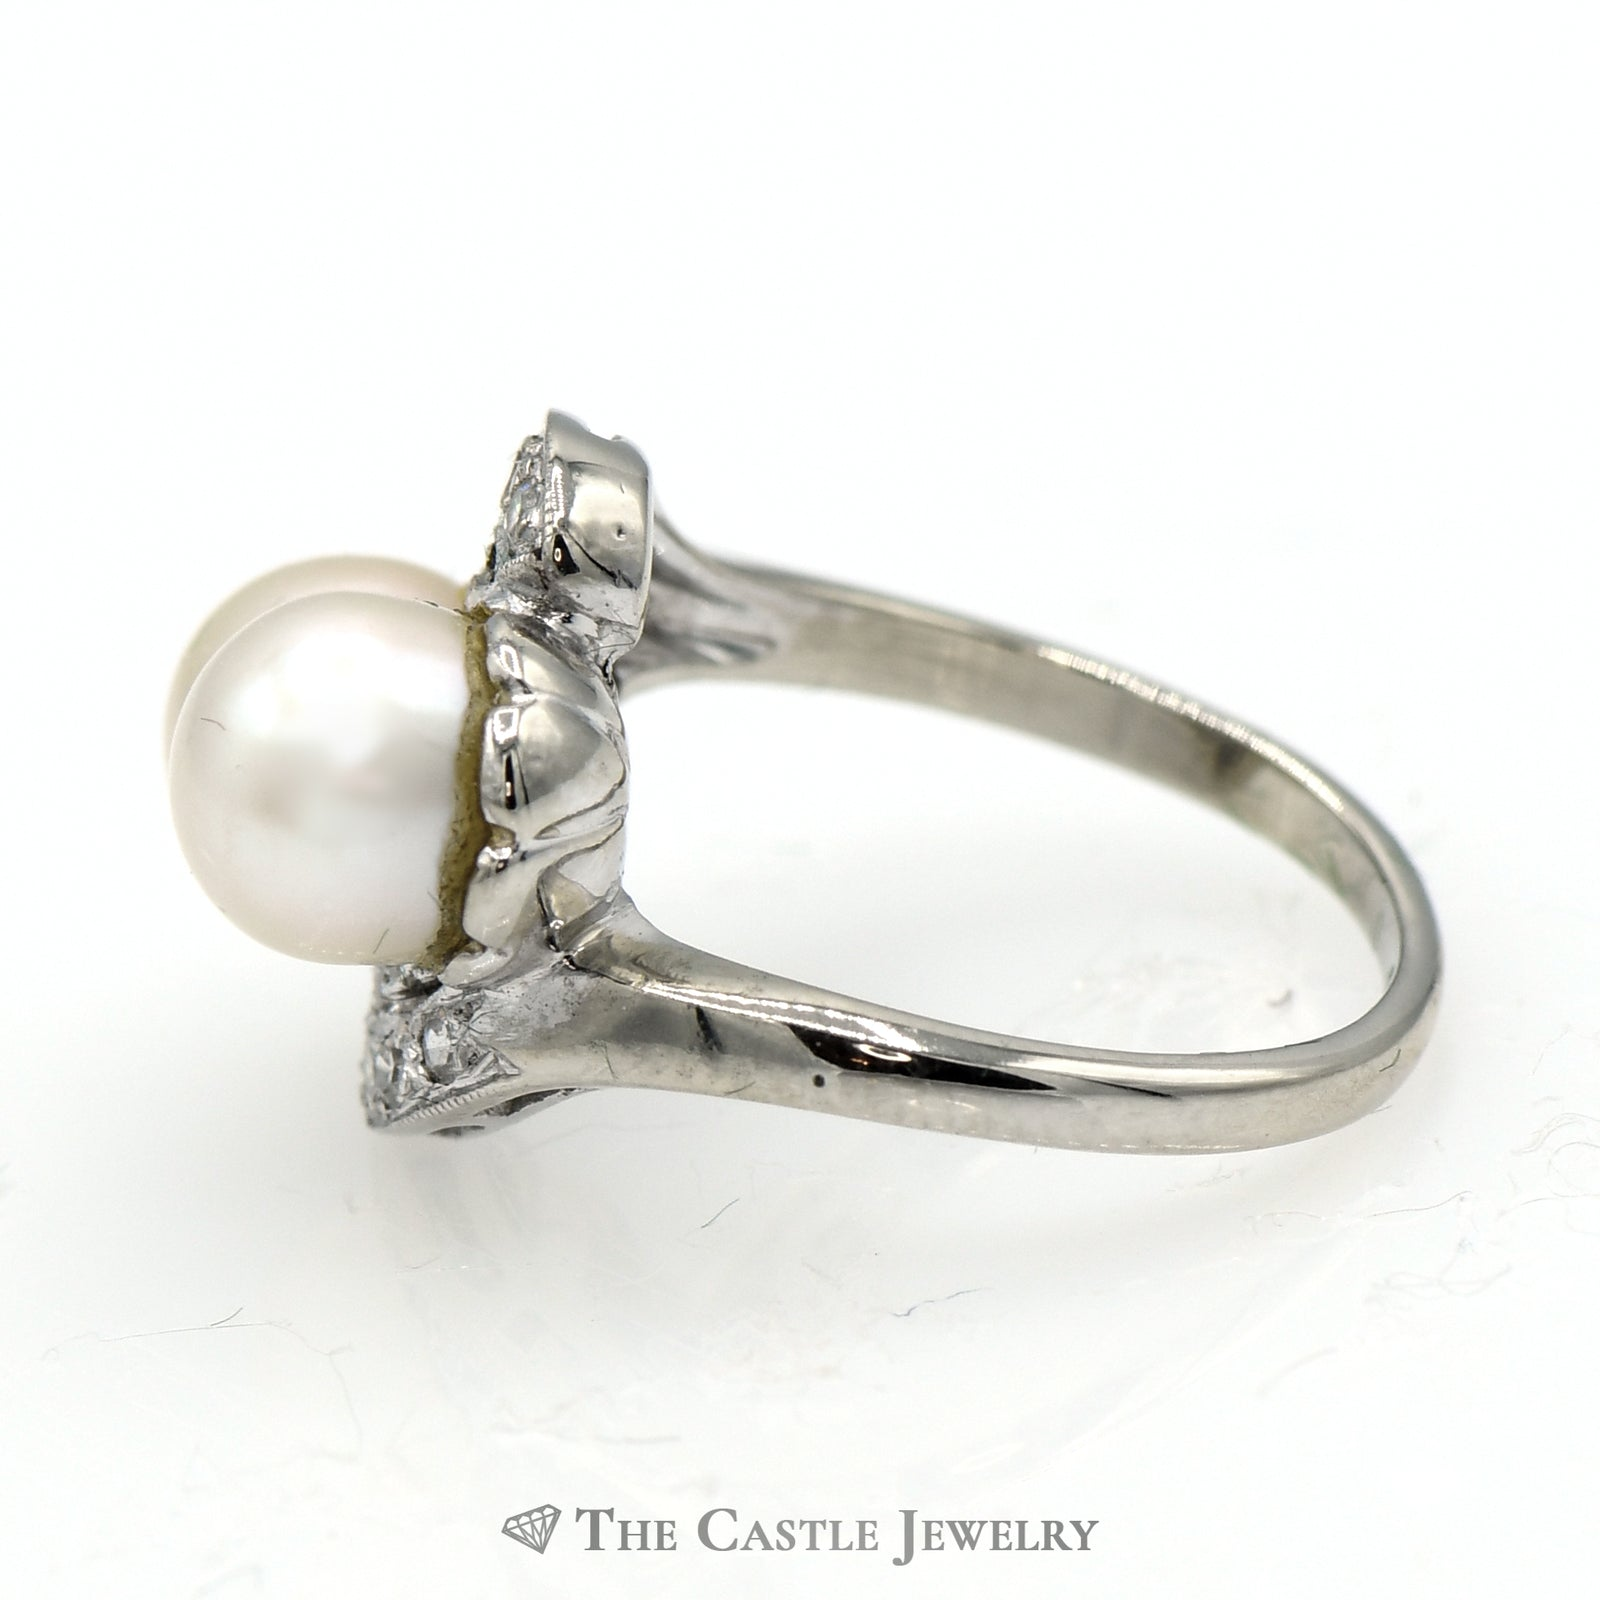 Double Pearl Ring with .15cttw Diamond Accents in 14k White Gold Swirled Mounting-2